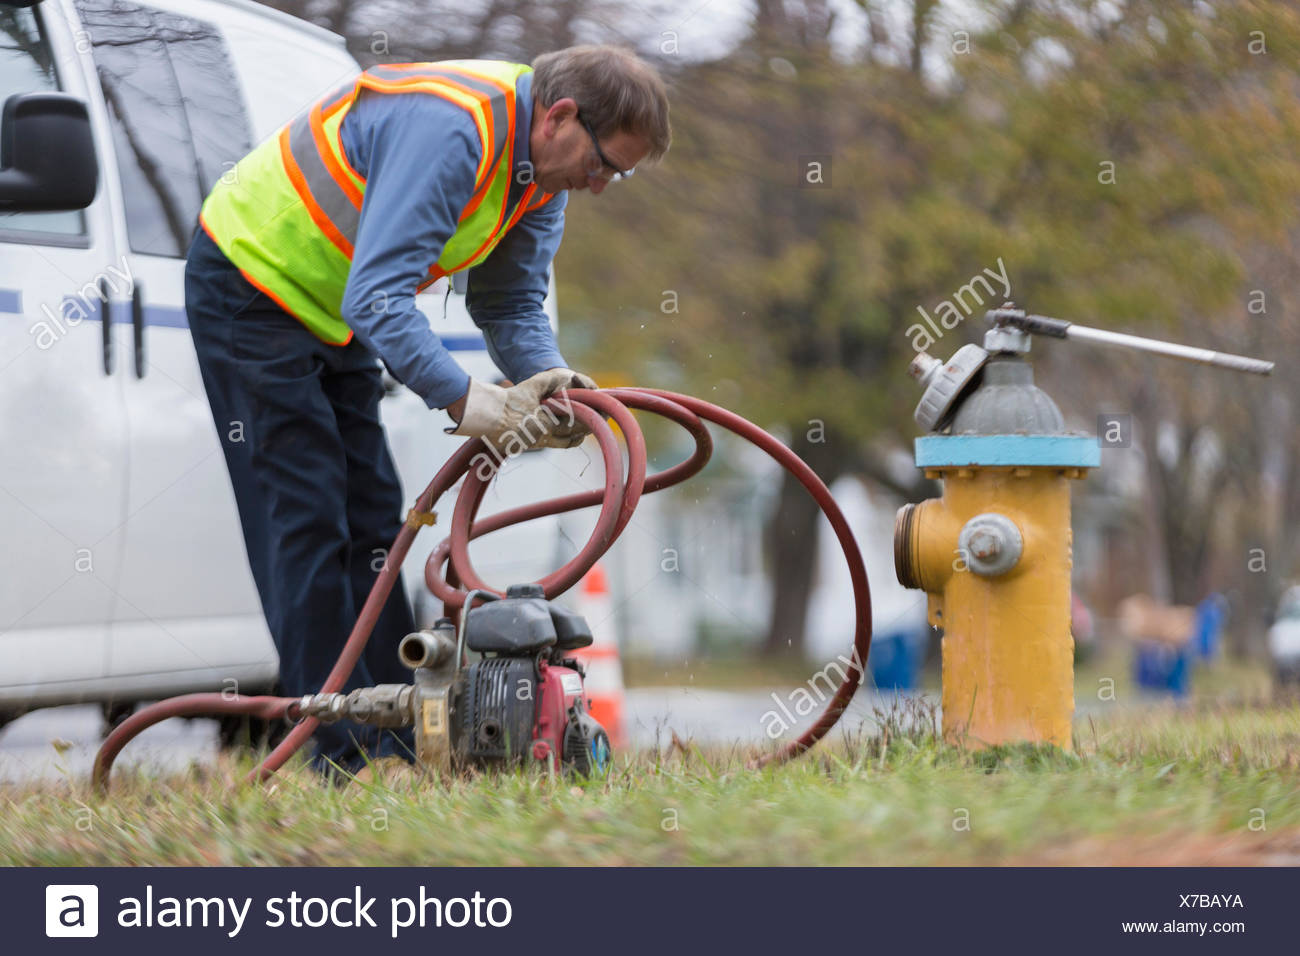 Water department technician coiling hose used to flush hydrant - Stock Image